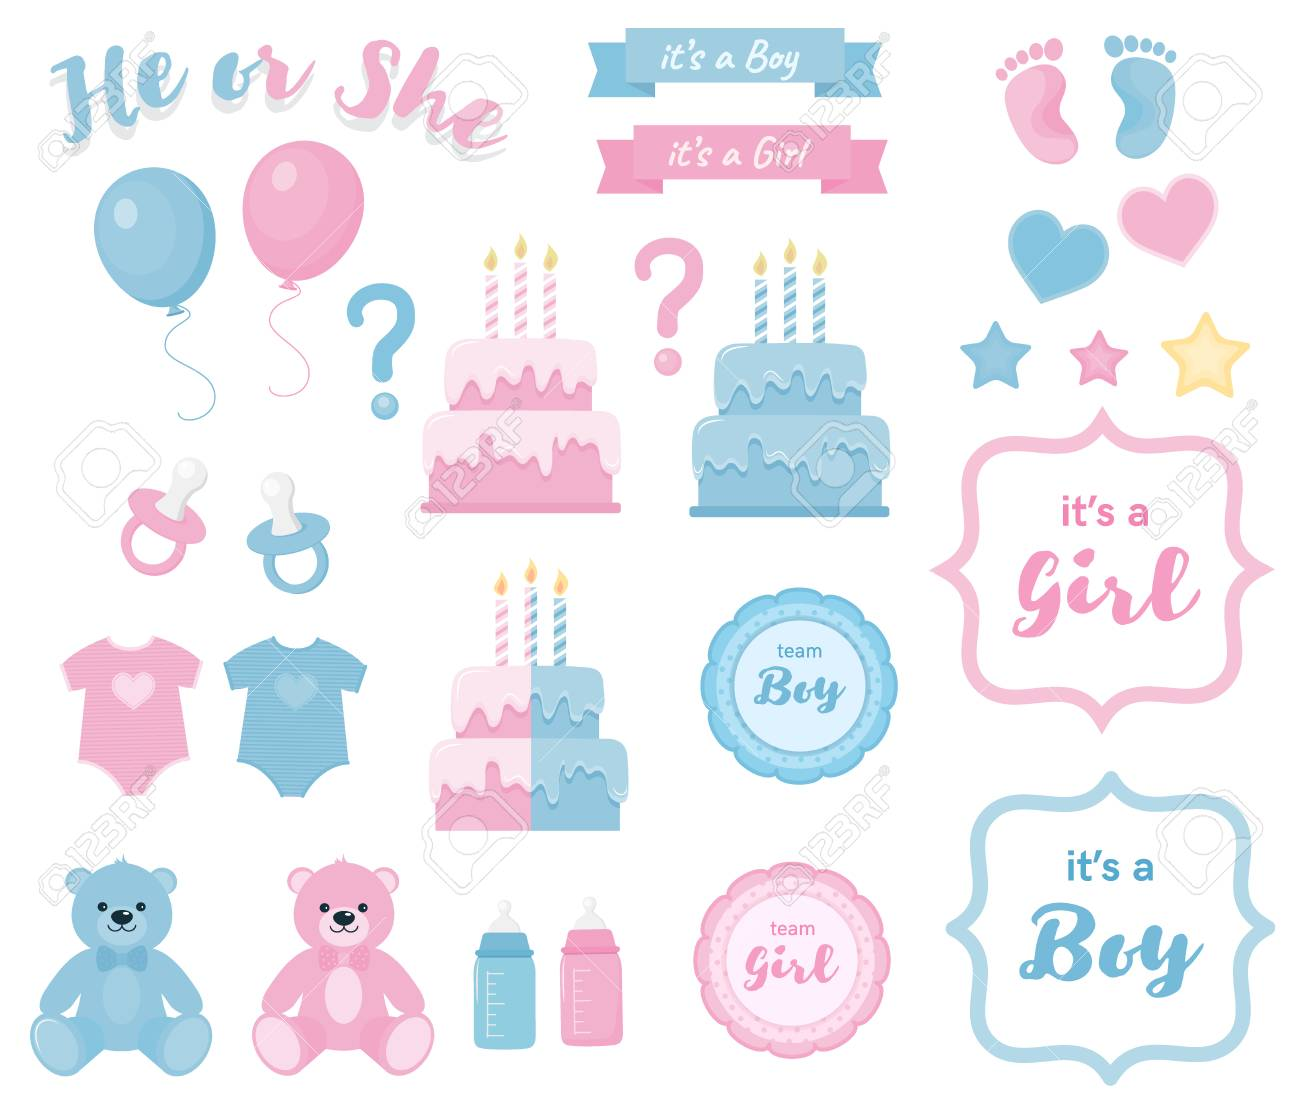 Gender reveal clipart with banners and frames.Blue and pink colors.